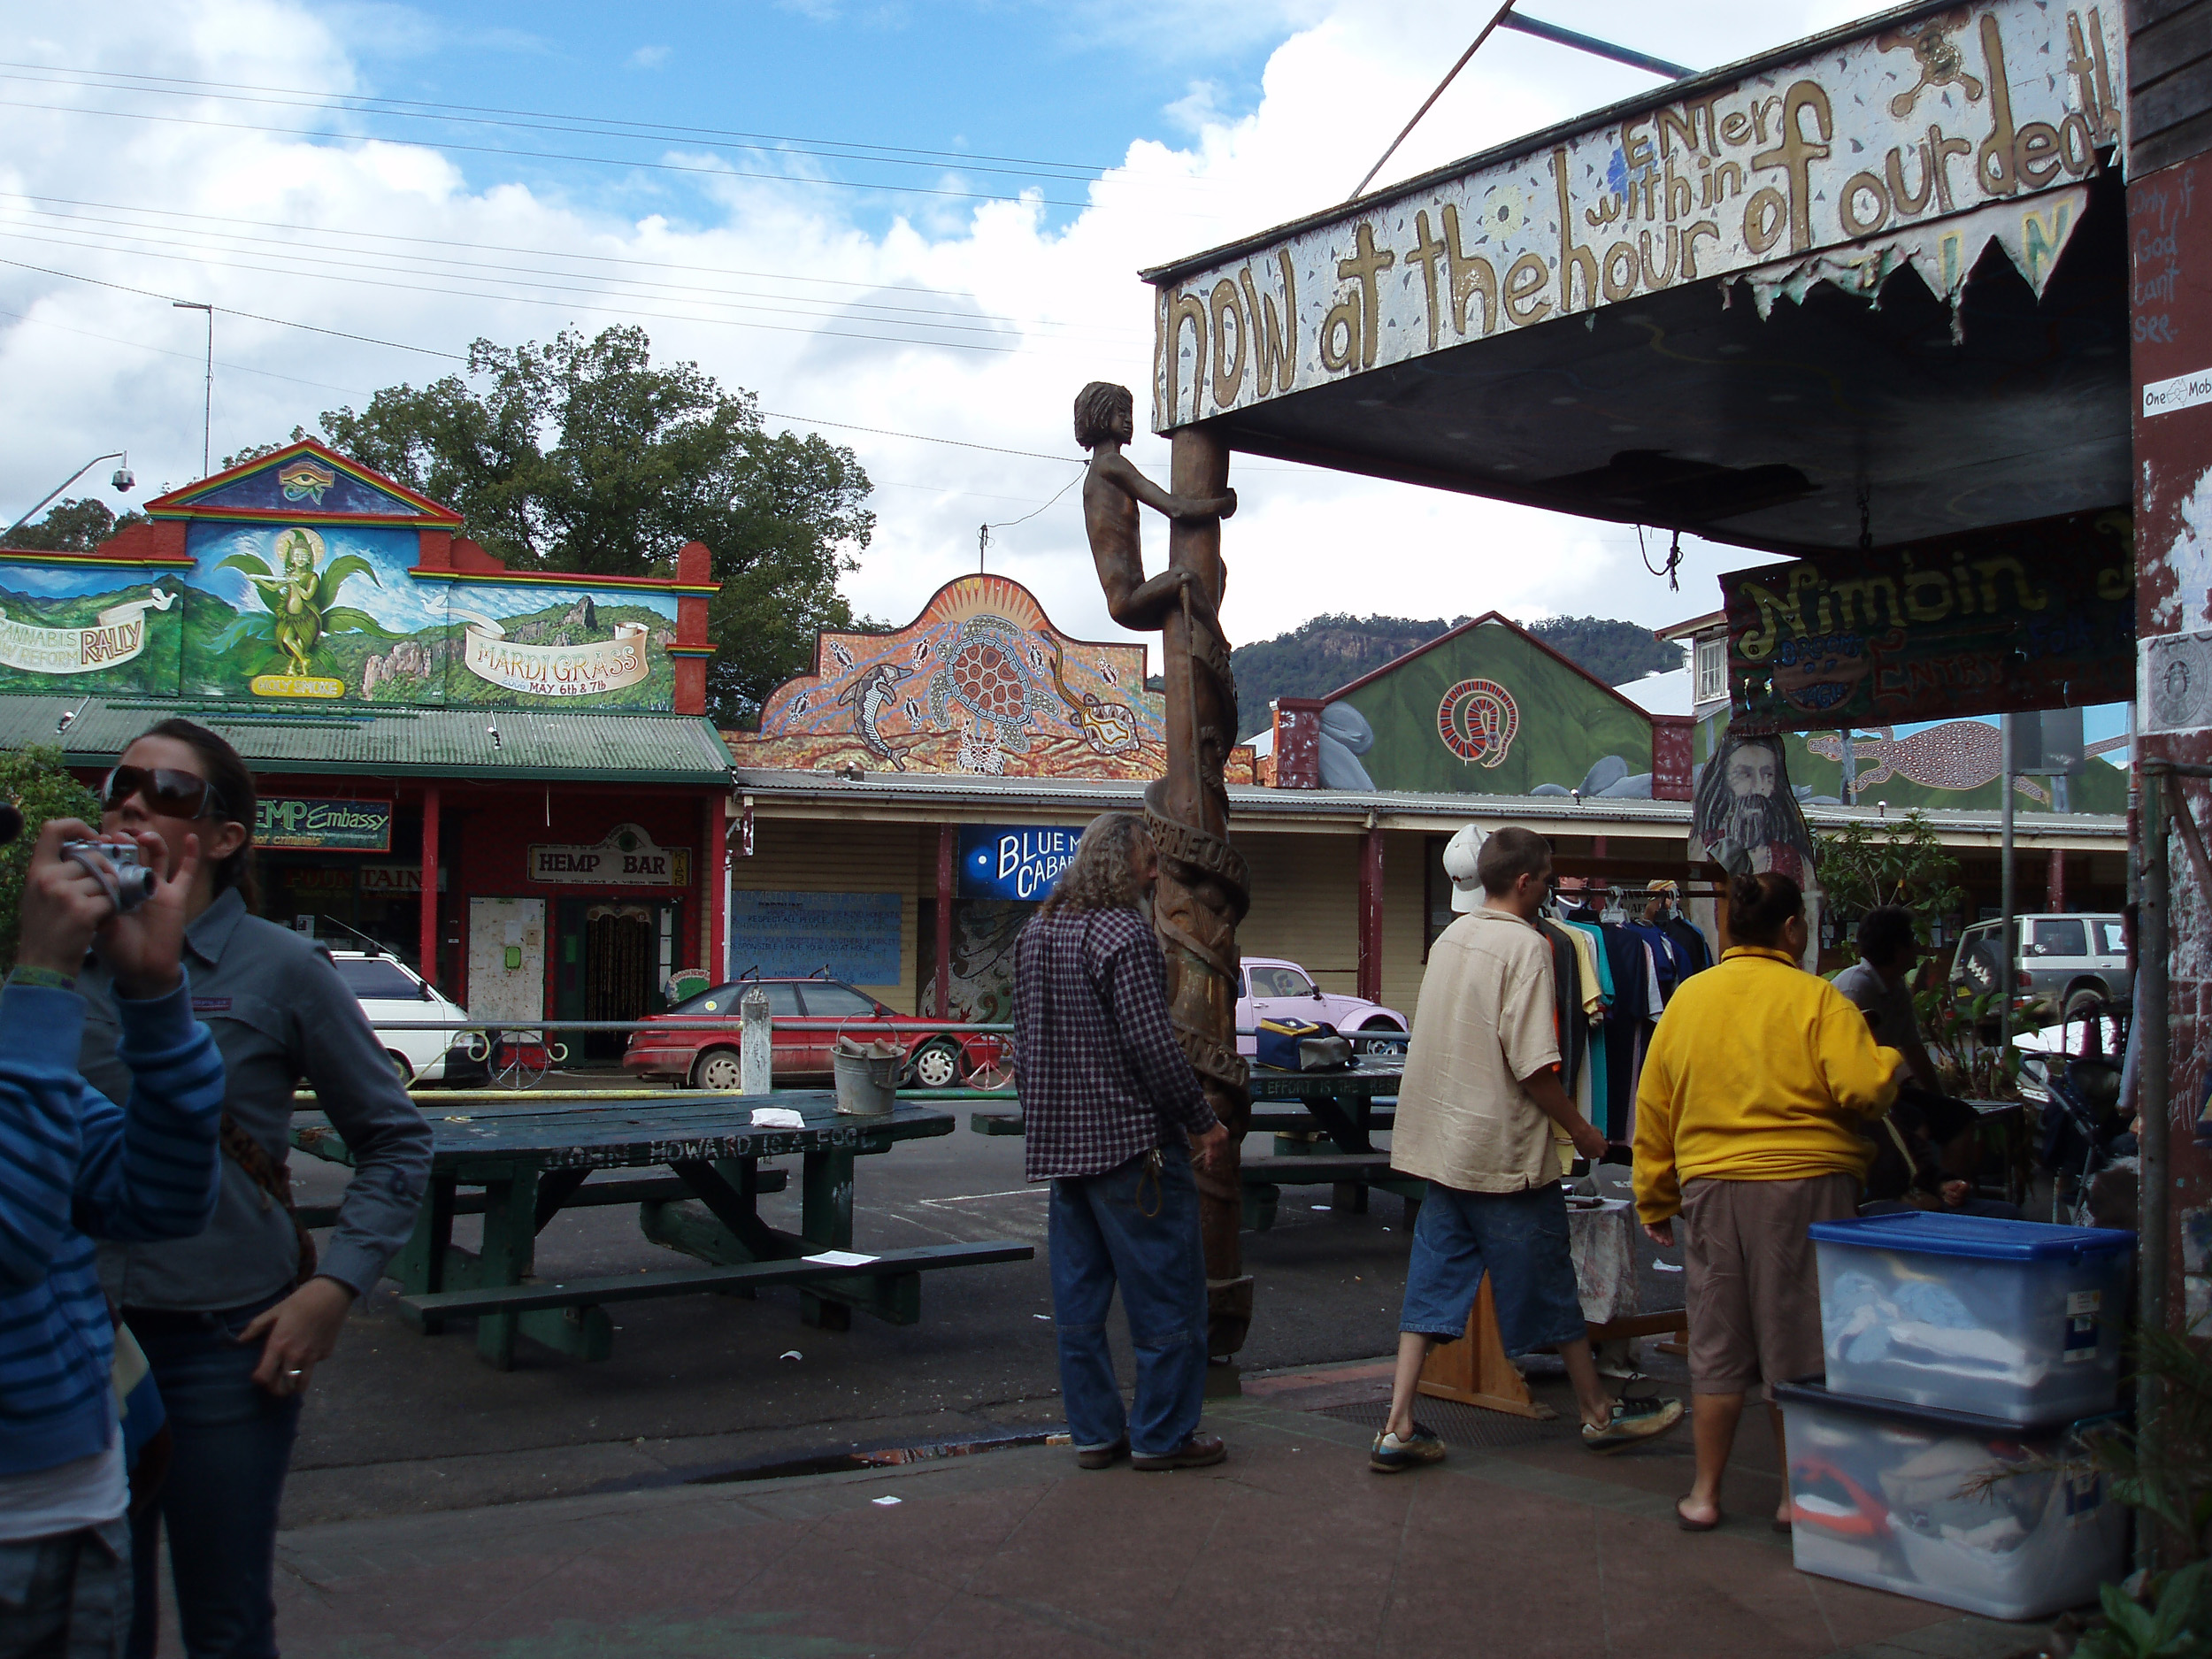 nimbin is a small town in northern new south wales famous for its relaxed attitude to life